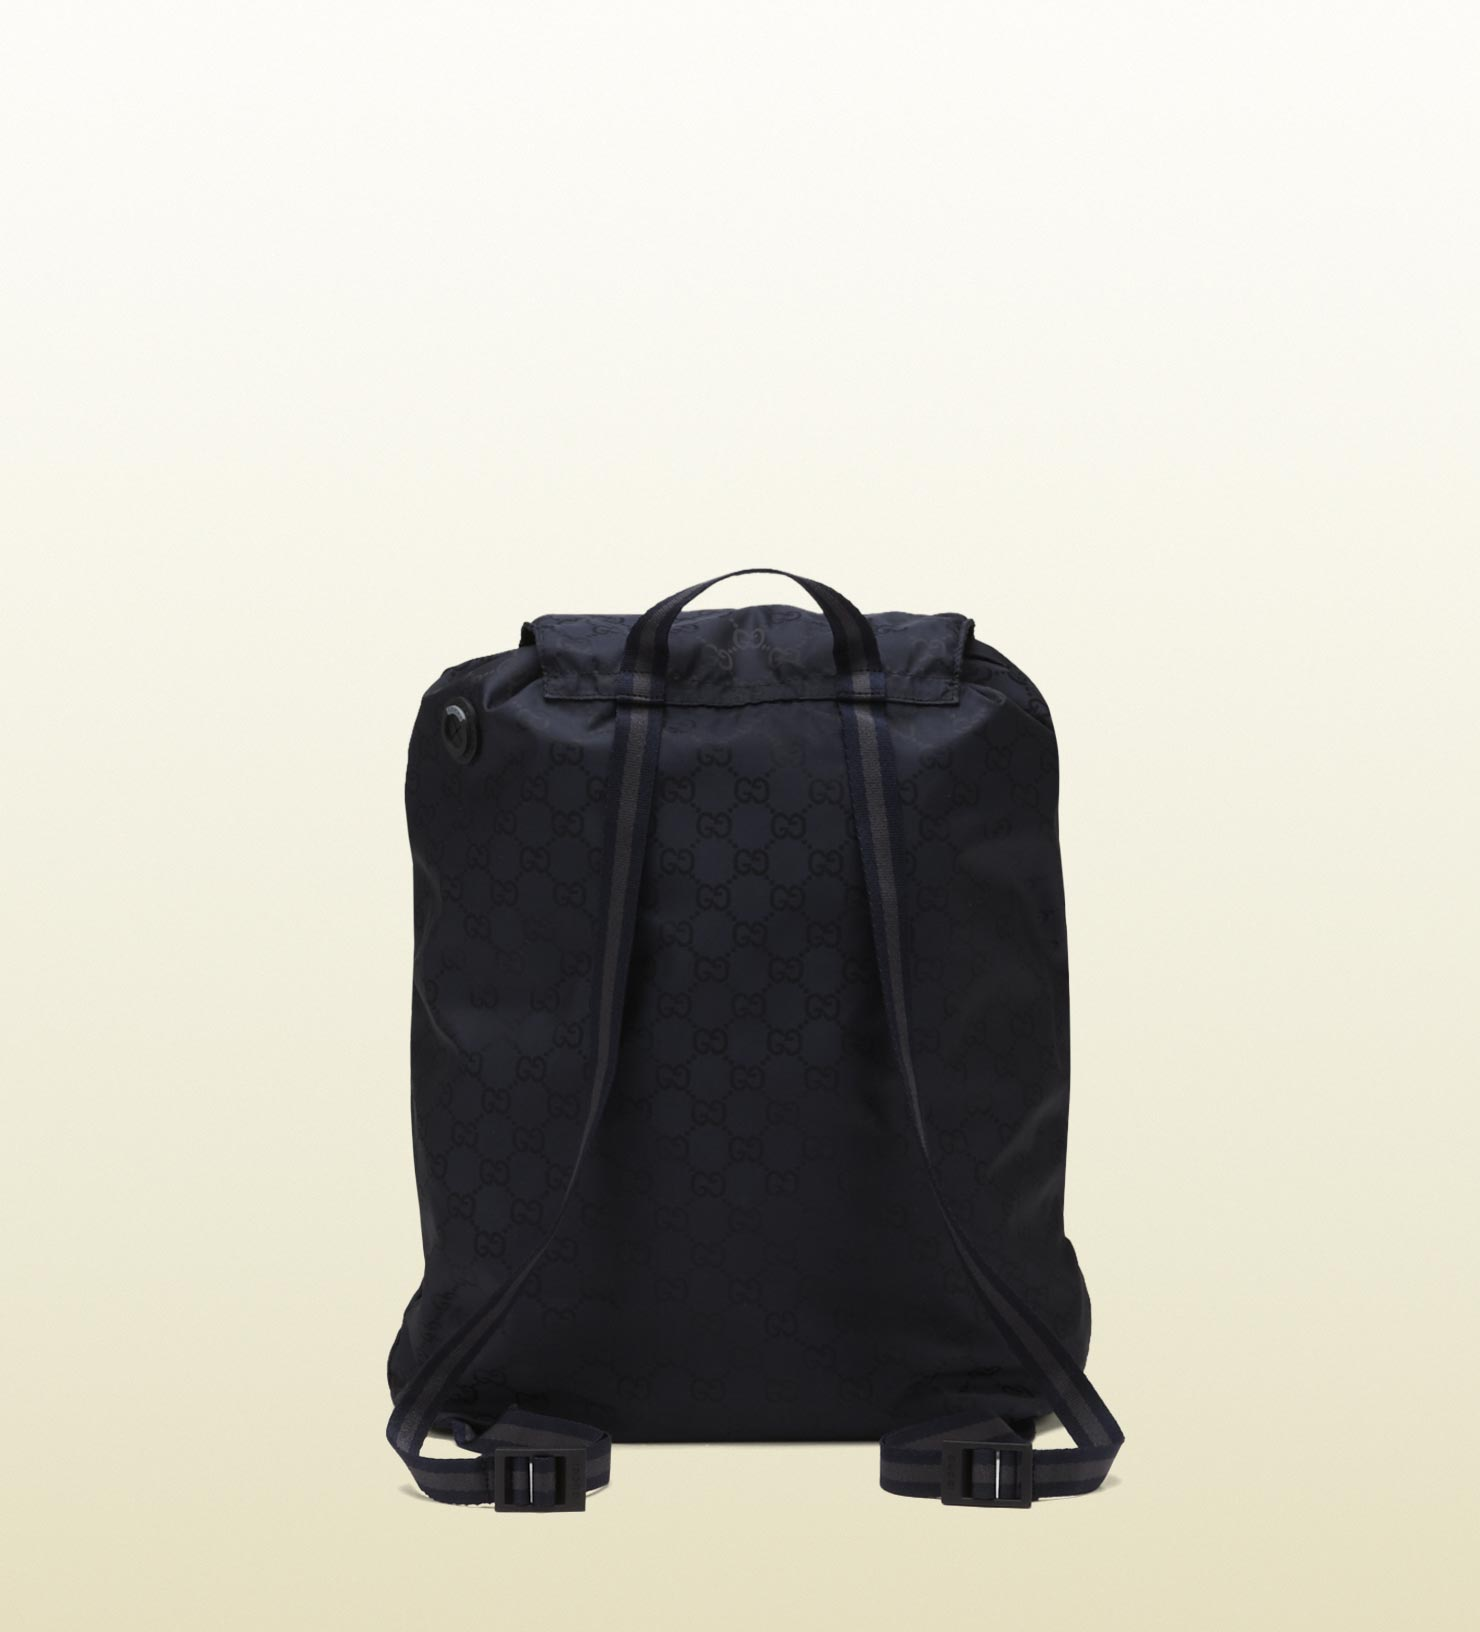 641891c227ad Lyst - Gucci Blue Gg Nylon Backpack From Viaggio Collection in Blue ...